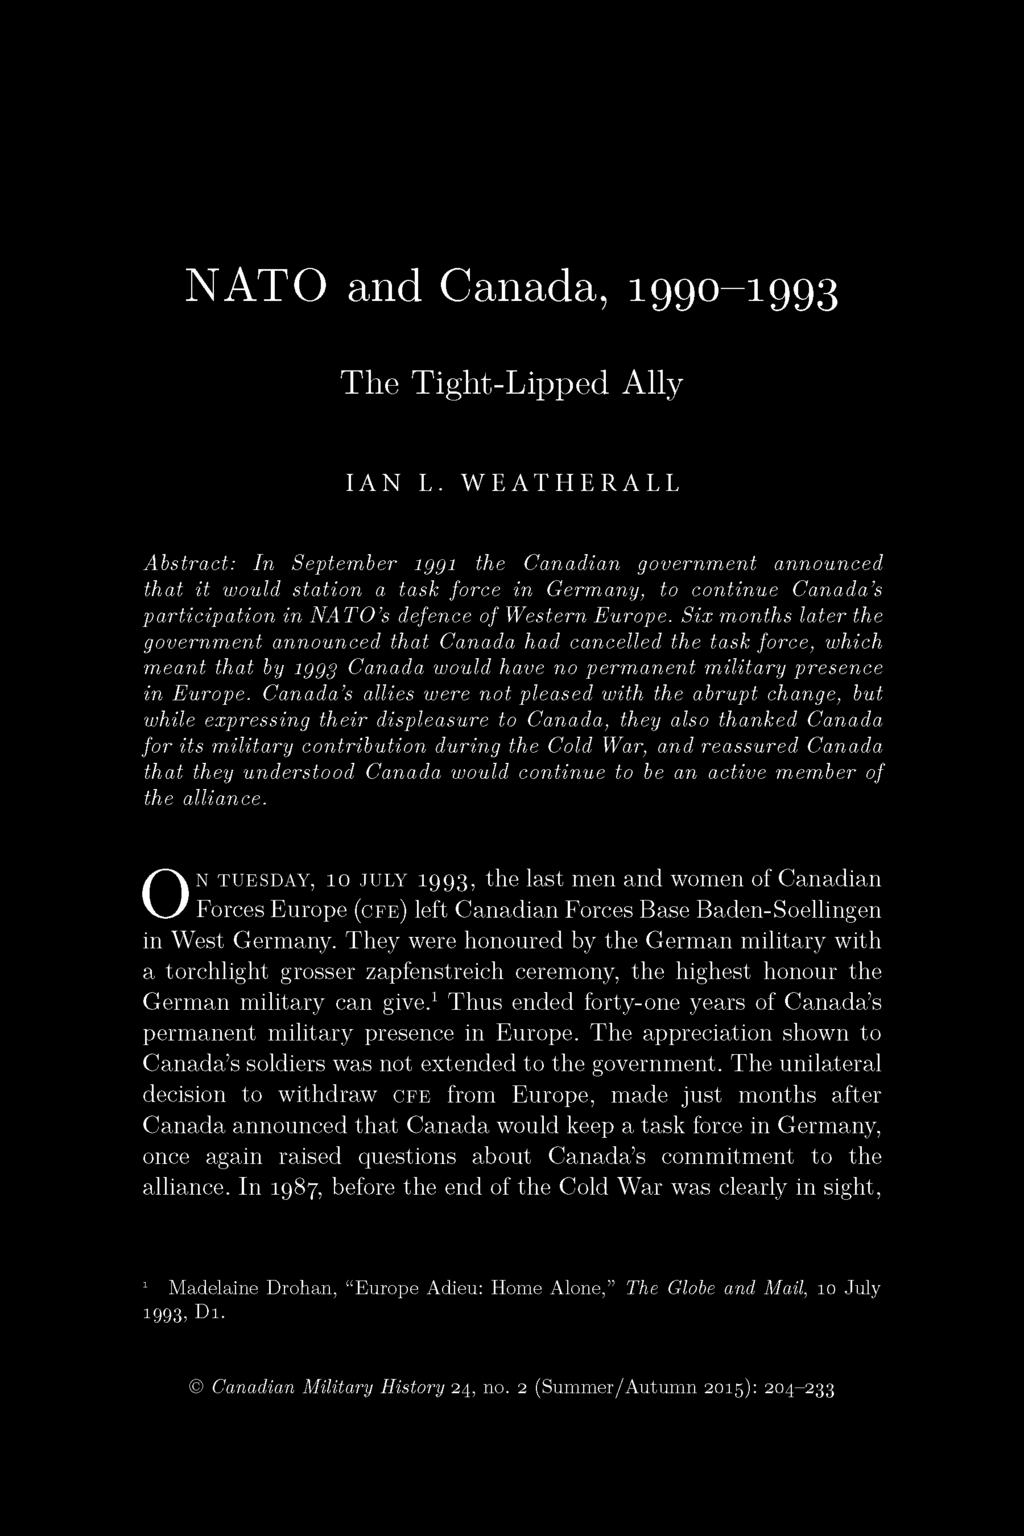 Six months later the government announced that Canada had cancelled the task force, which meant that by 1993 Canada would have no permanent military presence in Europe.